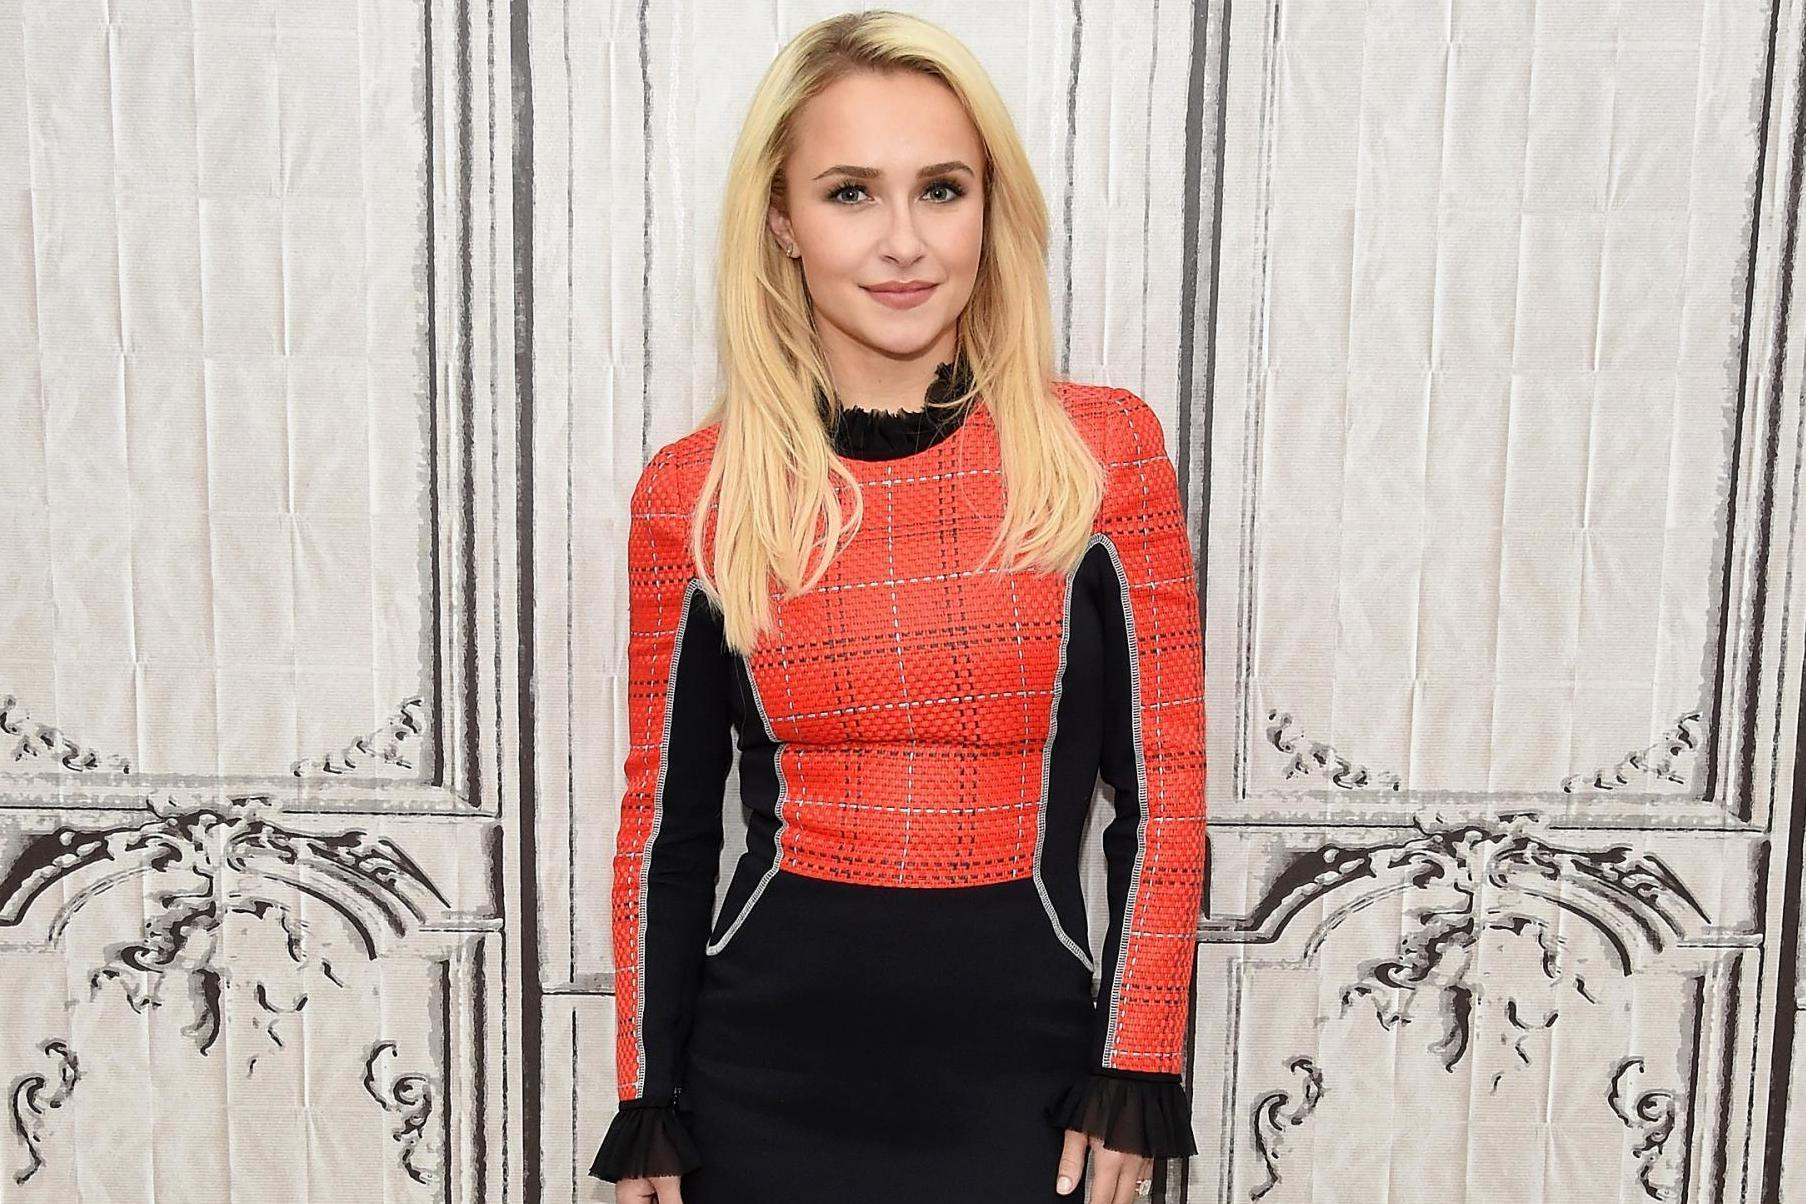 Hayden Panettiere addresses past alleged domestic abuse after ex-boyfriend arrested: 'Hope my story will empower others' thumbnail